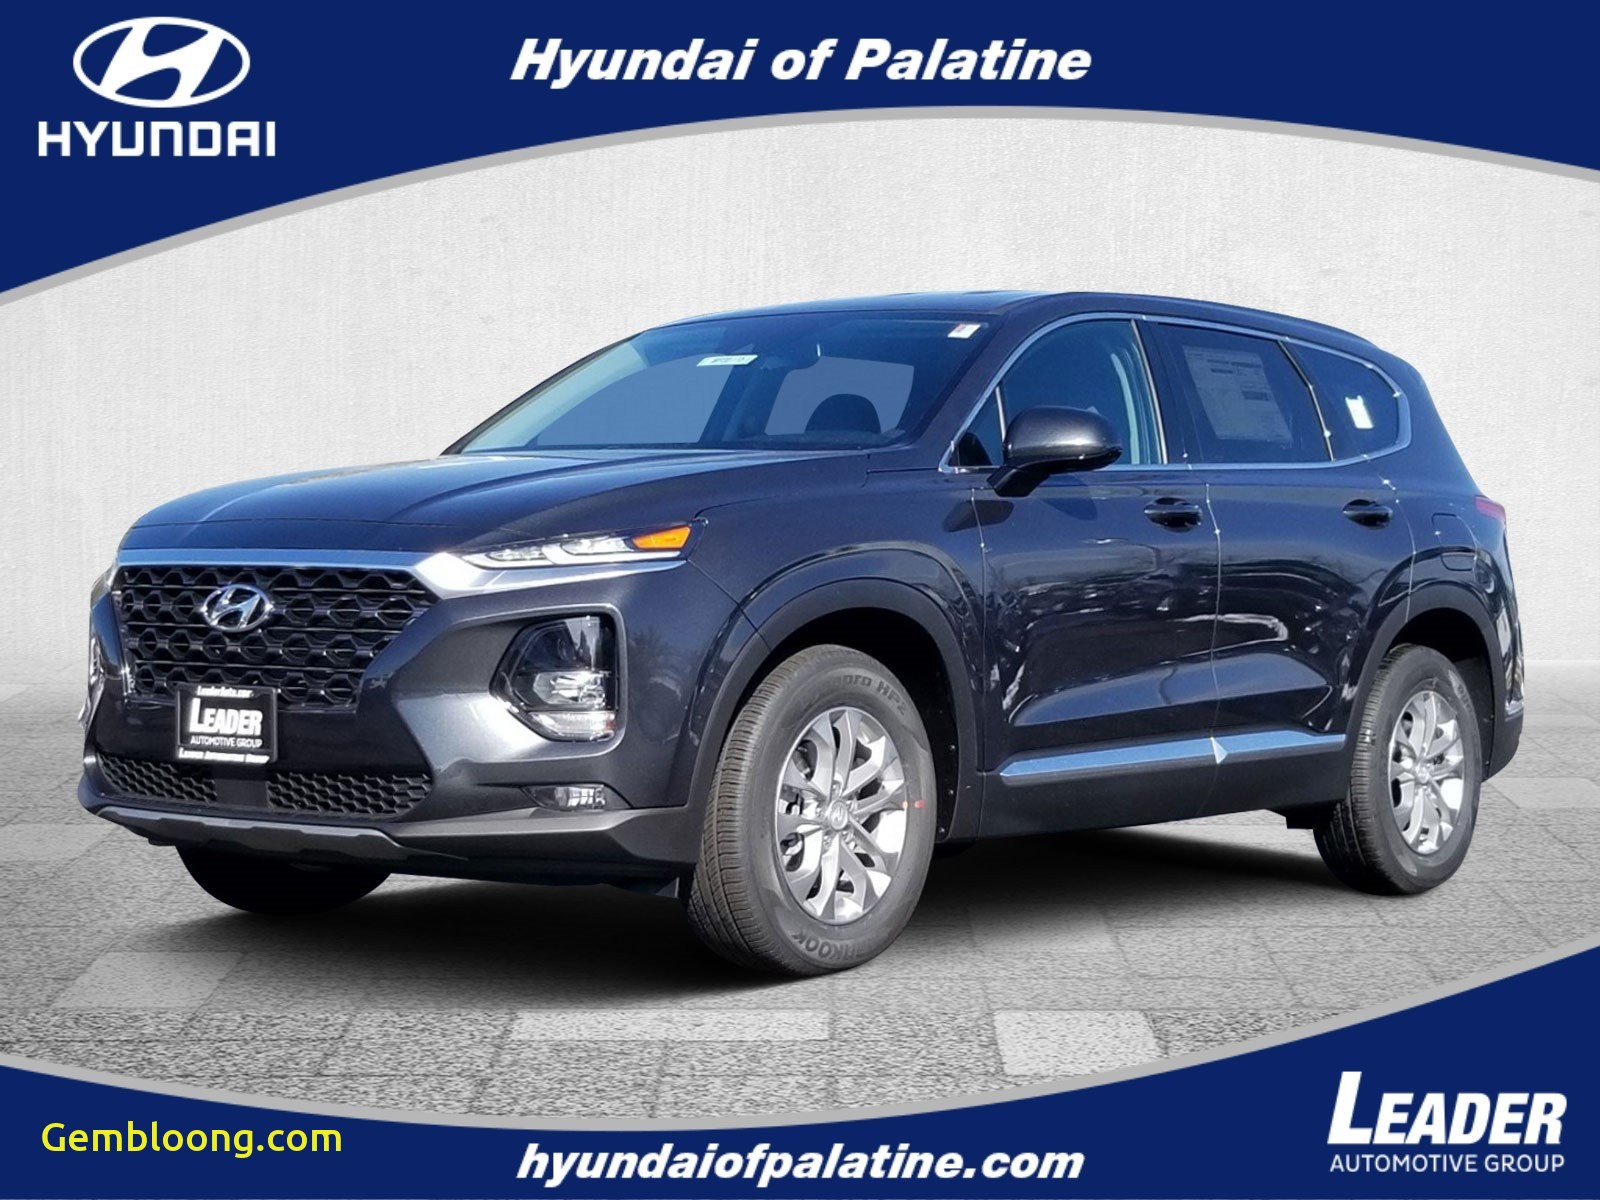 Buy Here Pay Here Dealerships Lovely New 2020 Hyundai Santa Fe for Sale at Leader Automotive